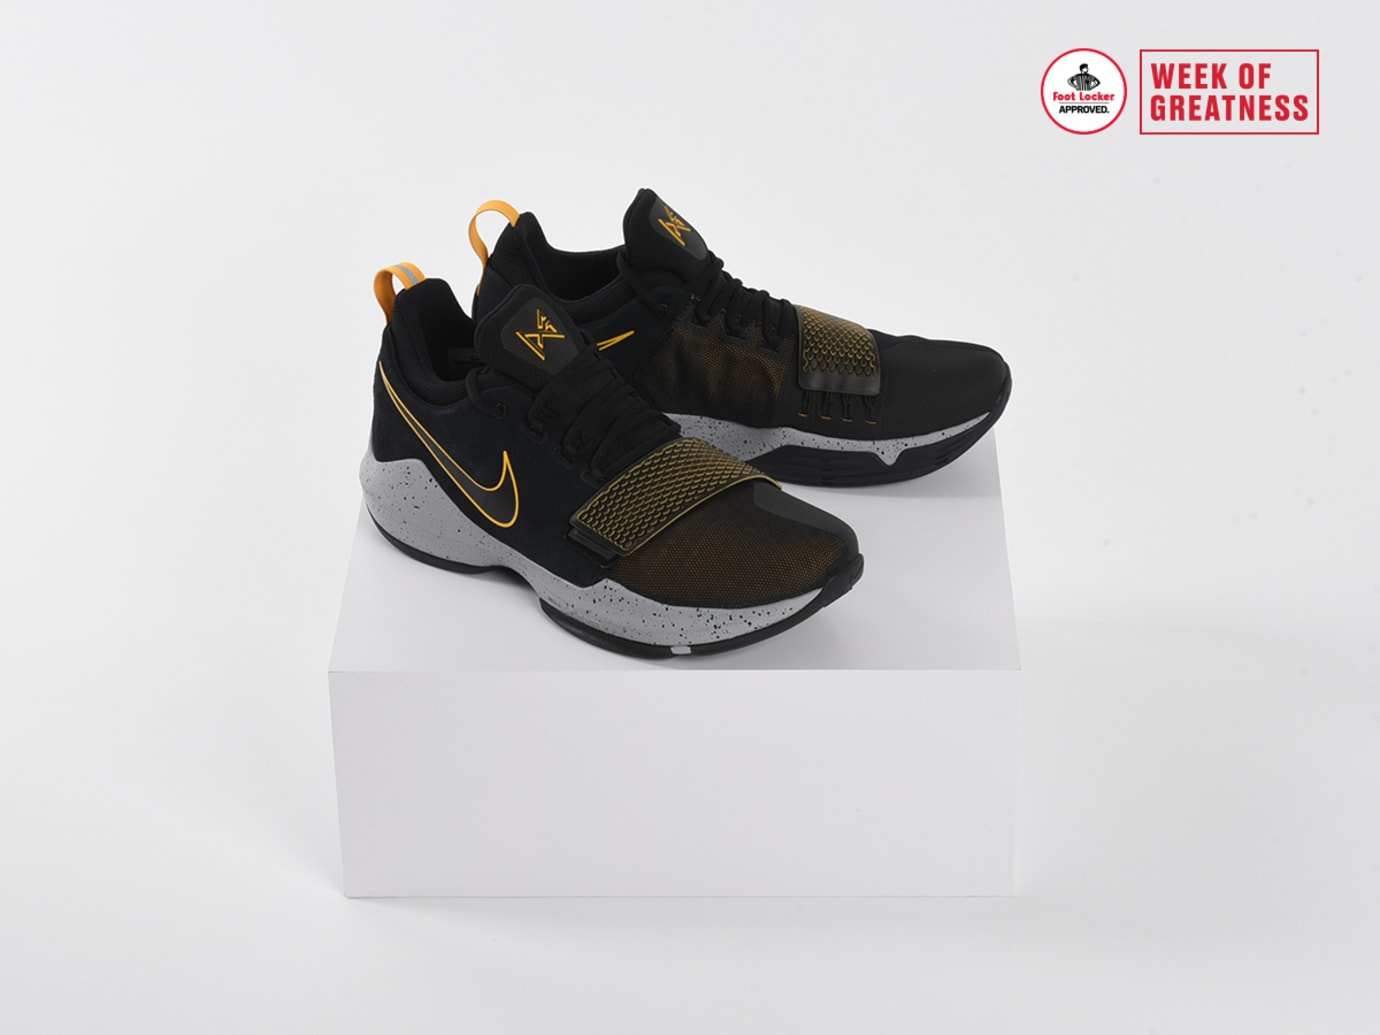 size 40 beb42 75774 Foot Locker Week of Greatness Nike PG1 Black Gold